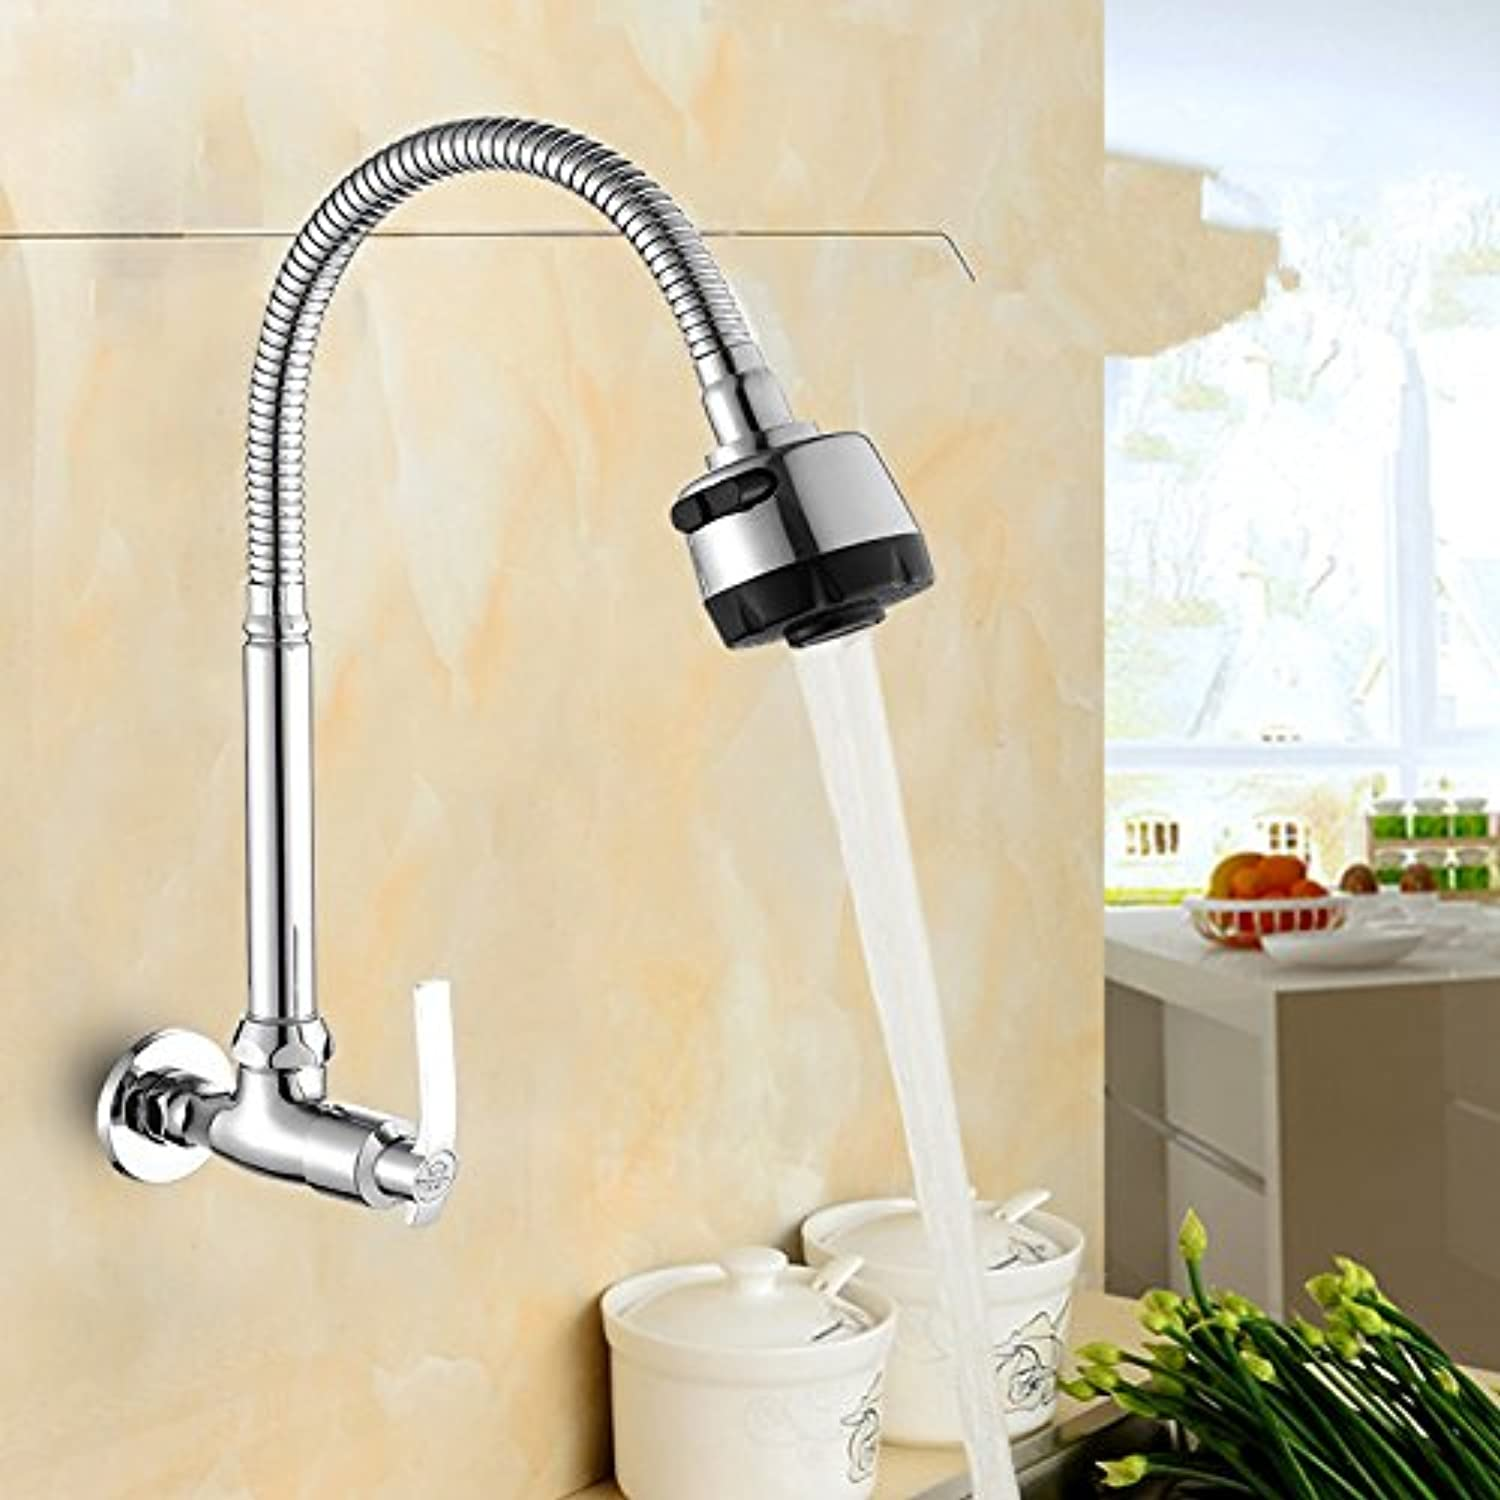 LHbox Basin Mixer Tap Bathroom Sink Faucet Faucet, kitchen, a cold, full of copper, Ceramic cores, dish washing basin, laundry pool, into the wall, the sink basin C